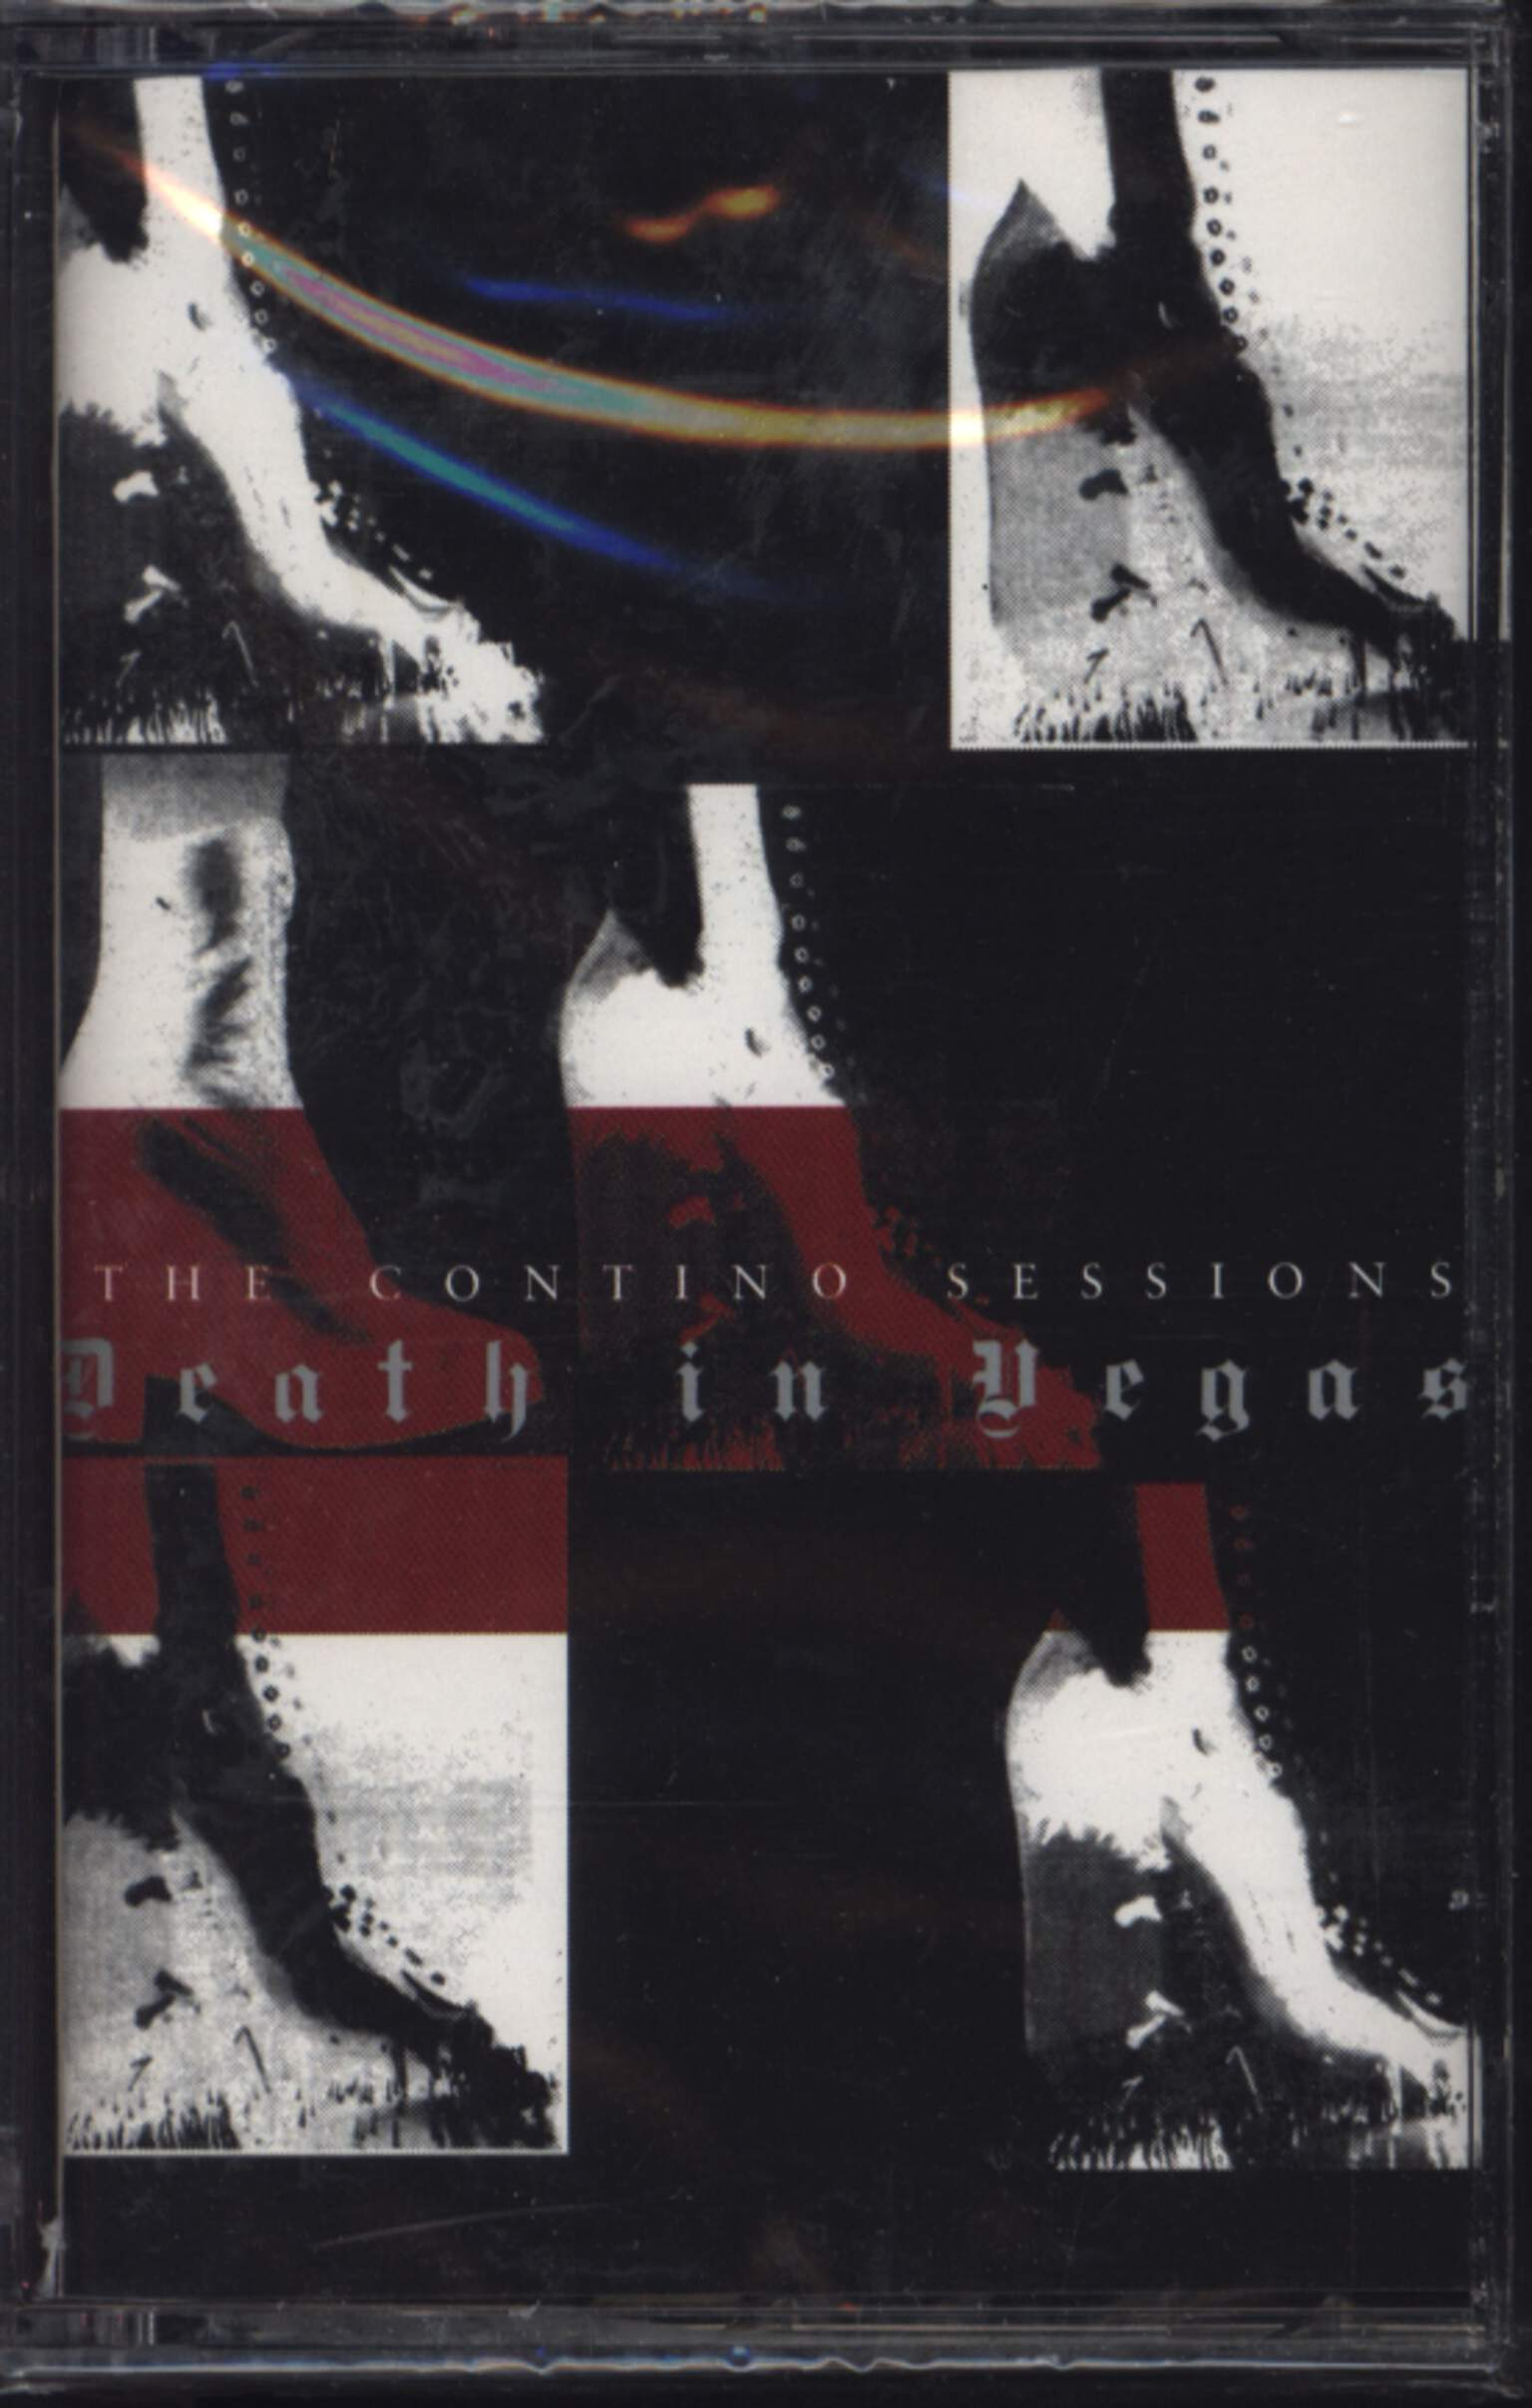 Death in Vegas: The Contino Sessions, Compact Cassette